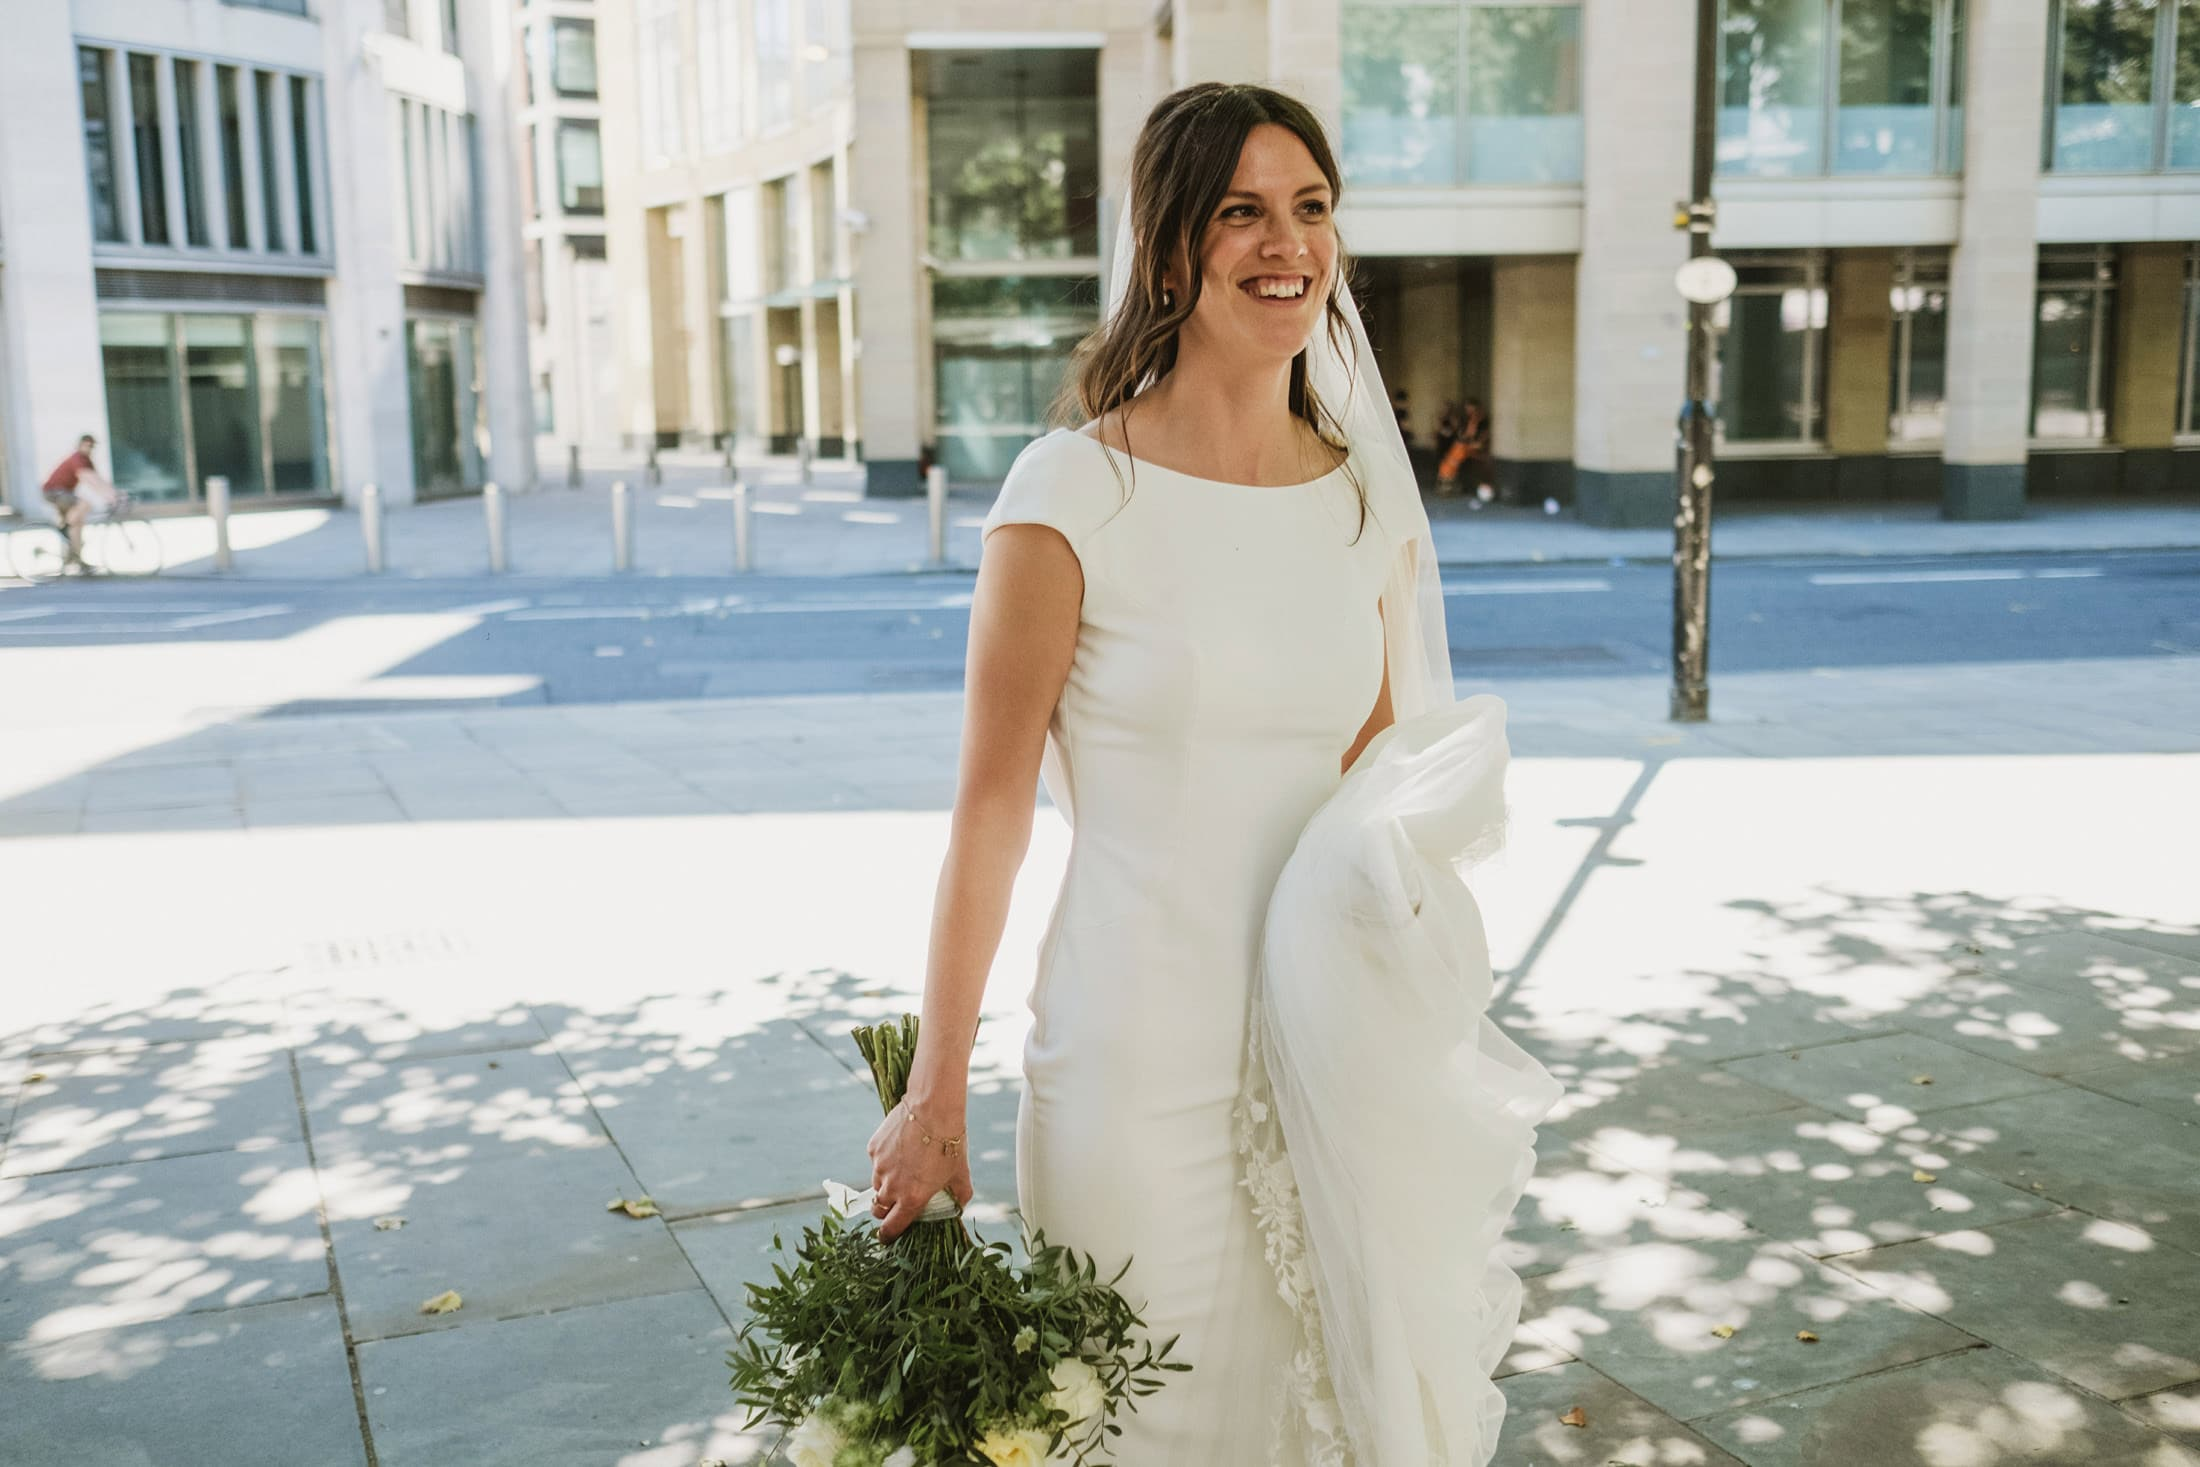 Bride walks through the London streets holding her bouquet by her side casually. Street documentary wedding photography by Dominique Shaw